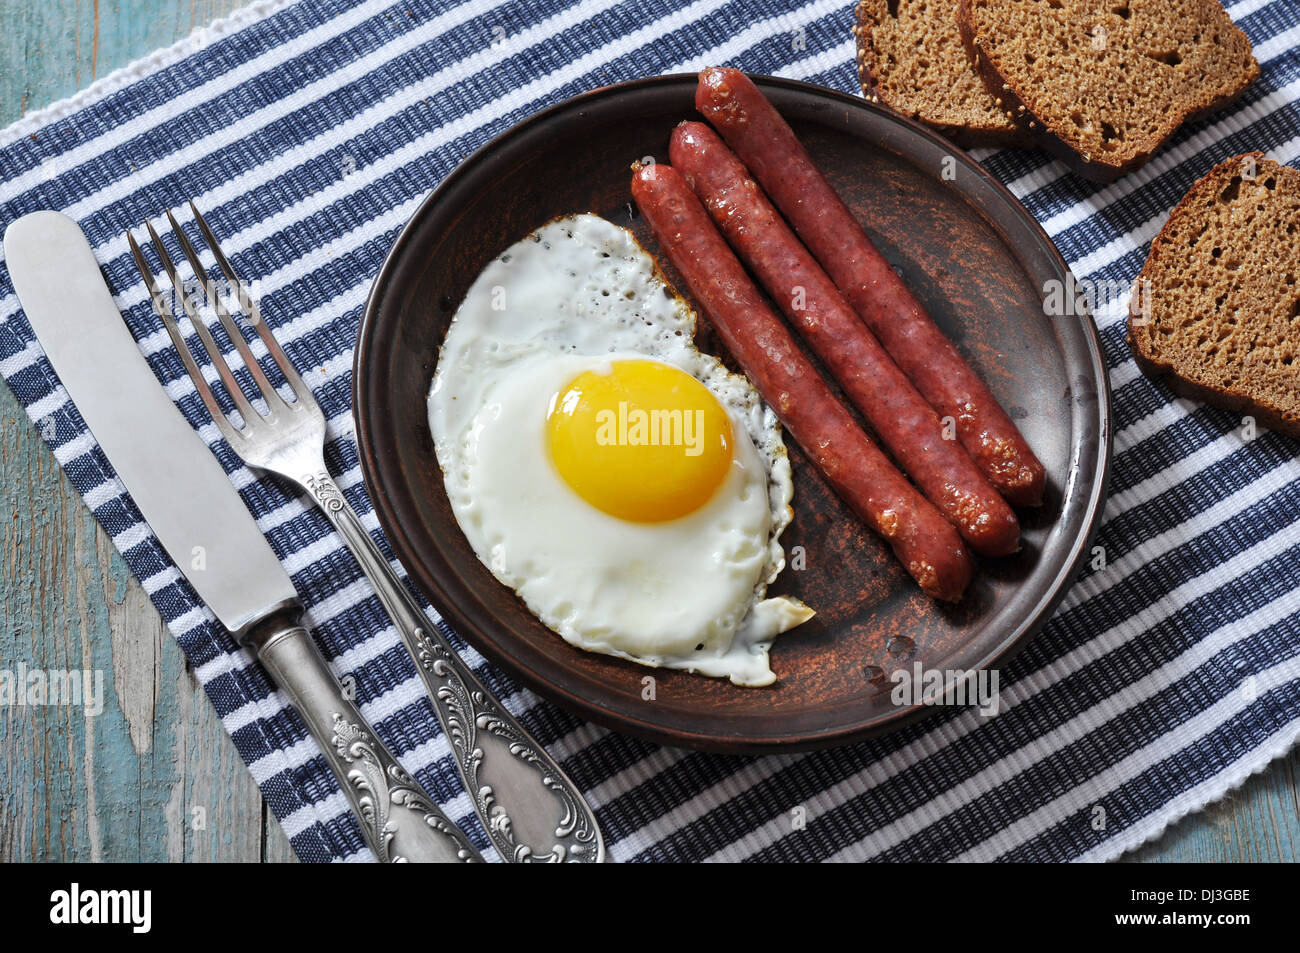 Fried egg with sausages on plate over wooden background - Stock Image